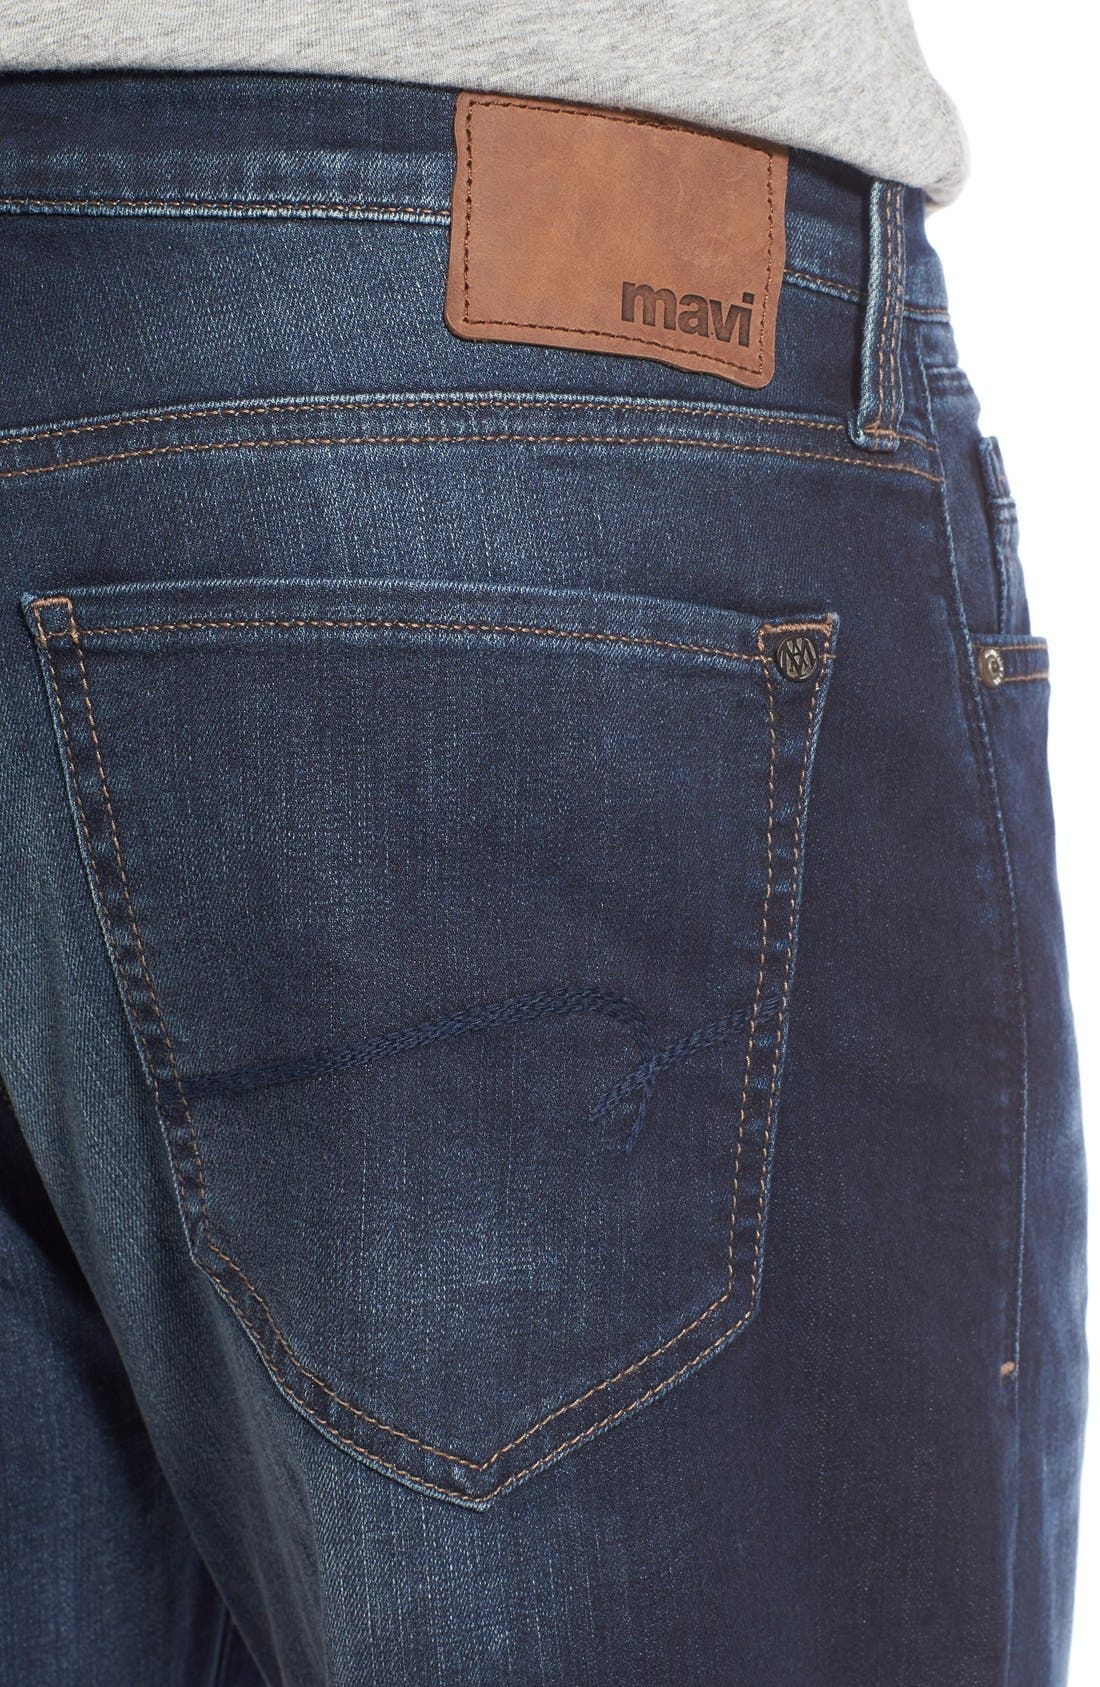 'Max' Relaxed Fit Jeans,                             Alternate thumbnail 9, color,                             DARK WILLIAMSBURG